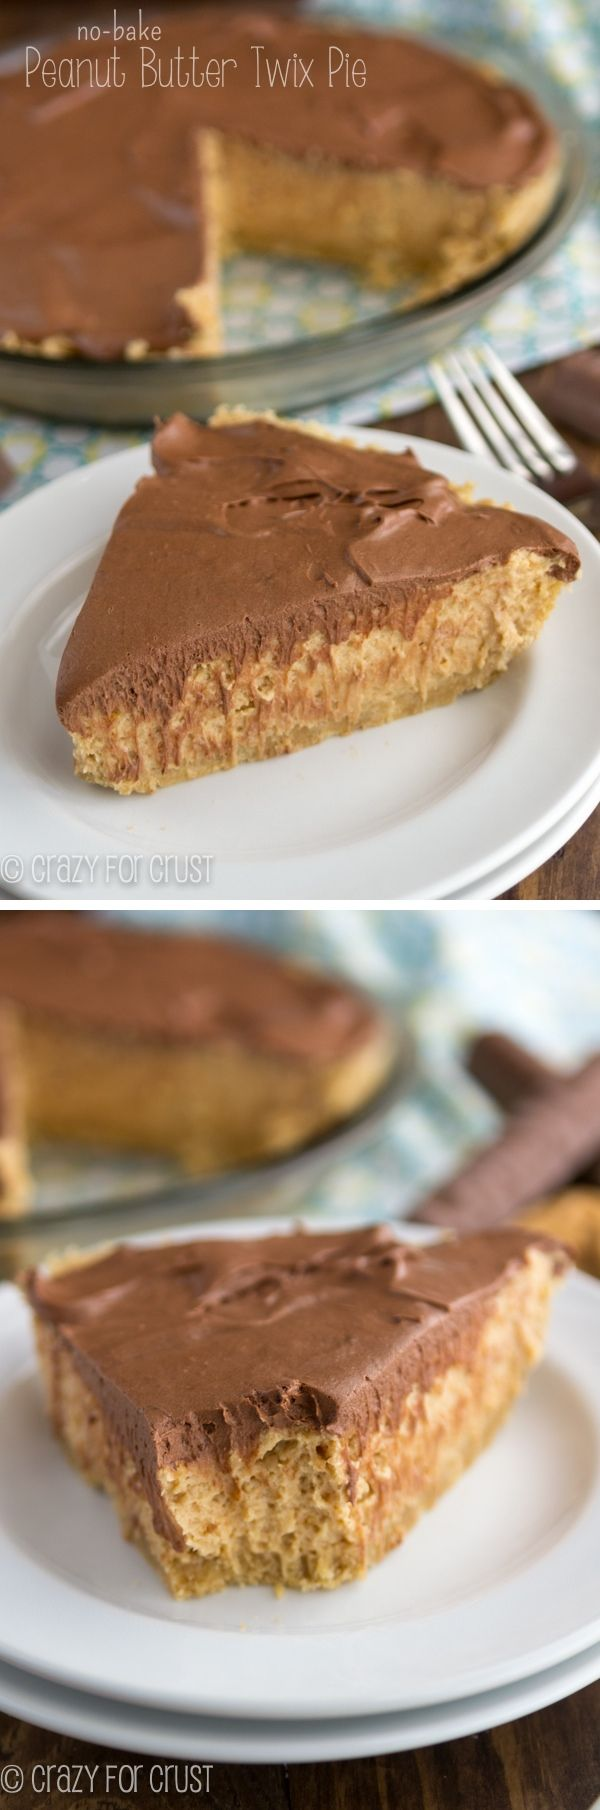 No-Bake Peanut Butter Twix Pie has layers of peanut butter and chocolate with a shortbread cookie crust!